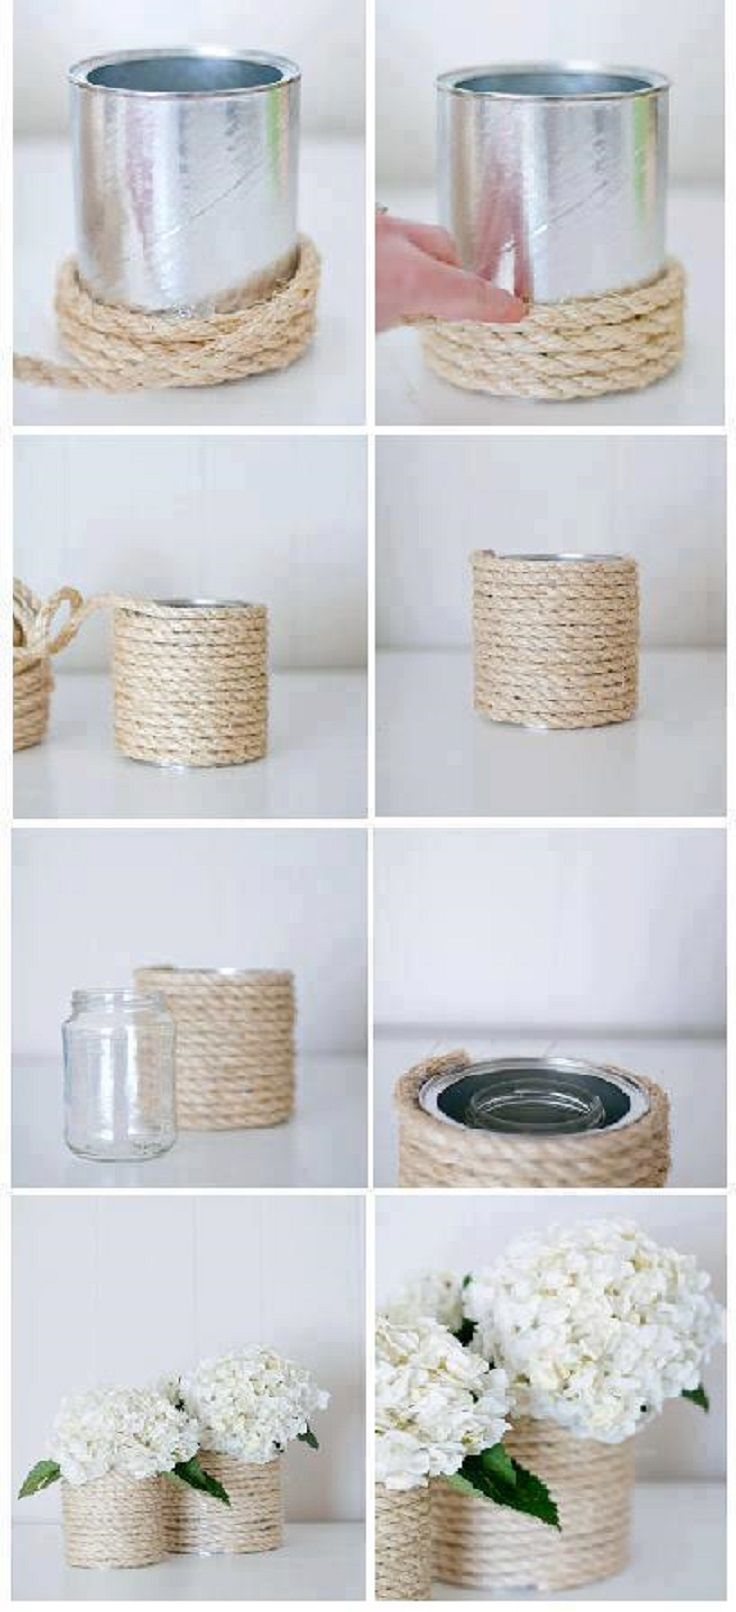 Top+10+Simple+DIY+and+Recycling+Old+Vase+Projects